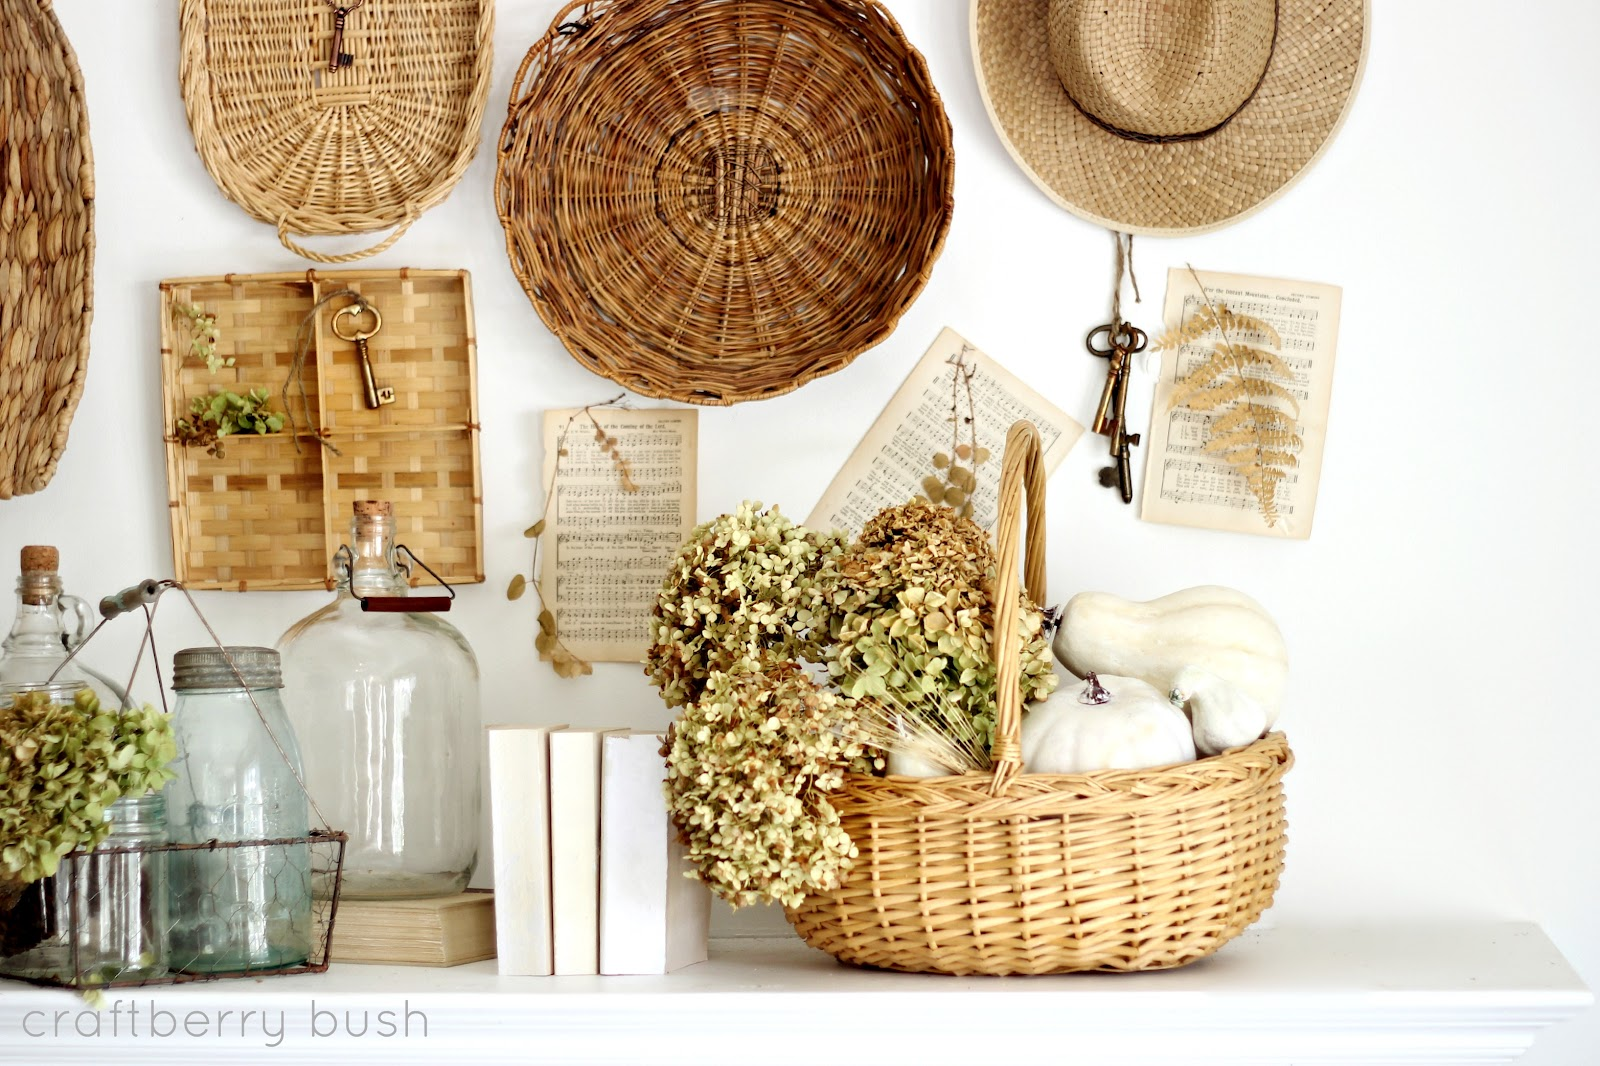 Best A Collection Of Baskets…My Fall Mantel 2012 This Month